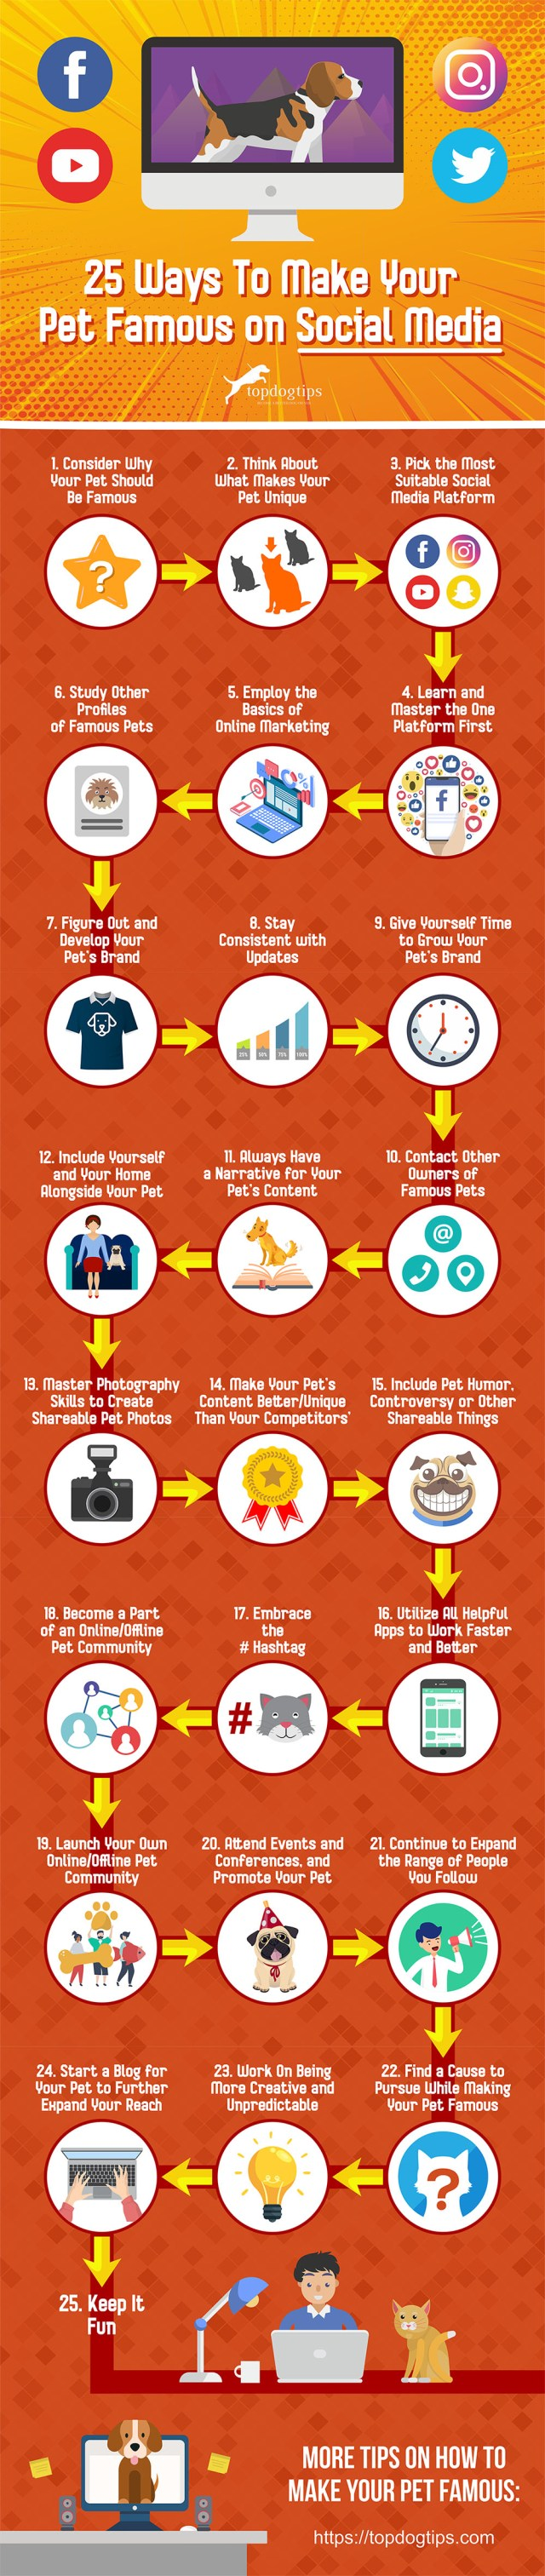 25 Ways to Make Your Pet Famous on Social Media [Infographic]